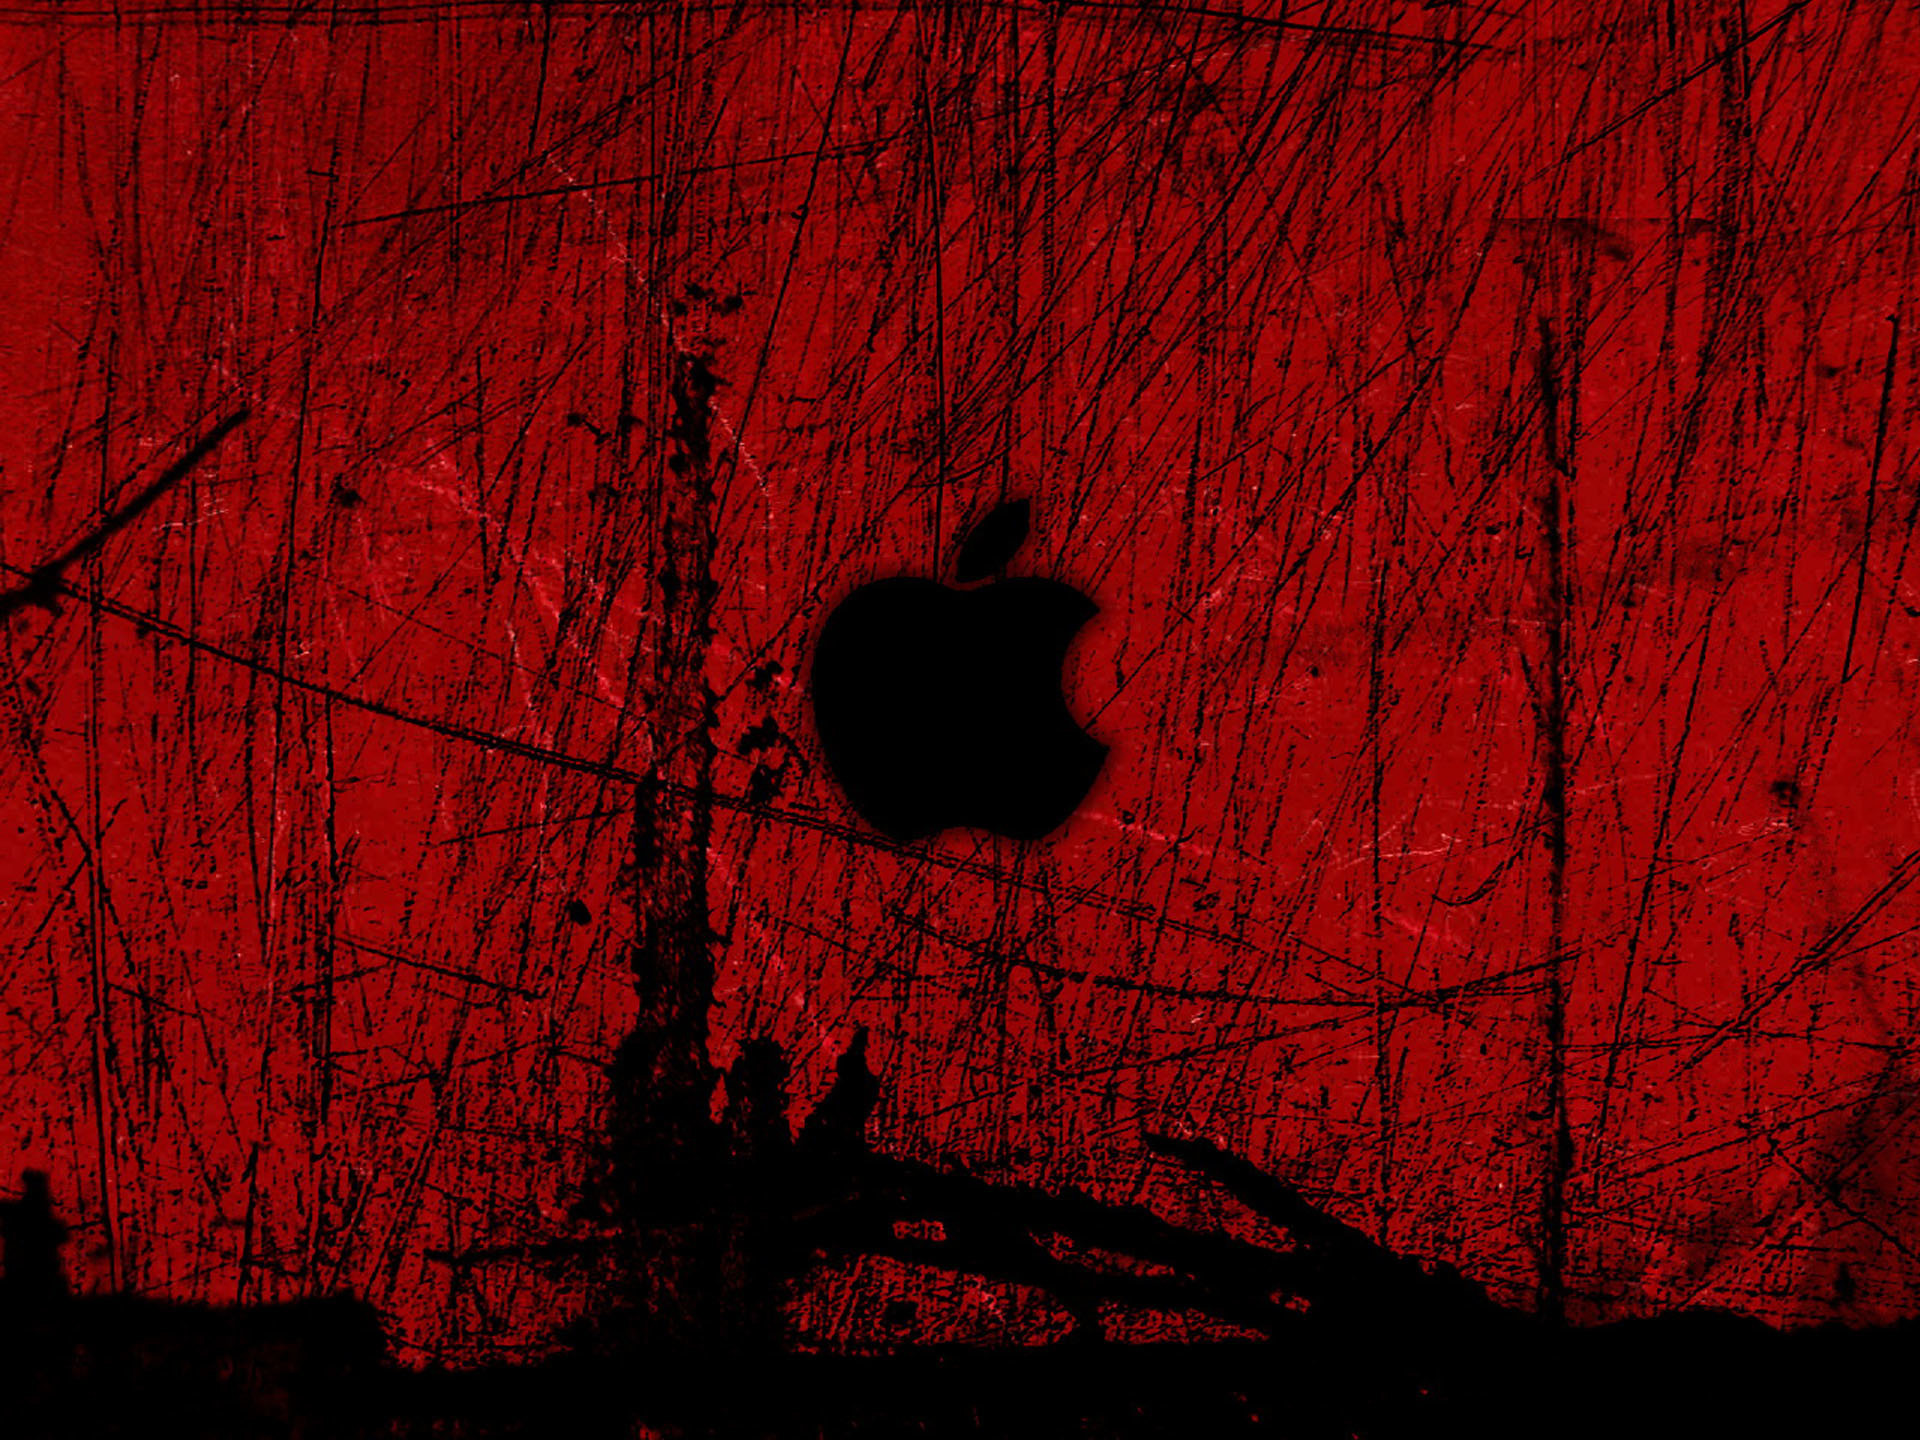 699960 red apple wallpapers 1920x1440 for iphone 5